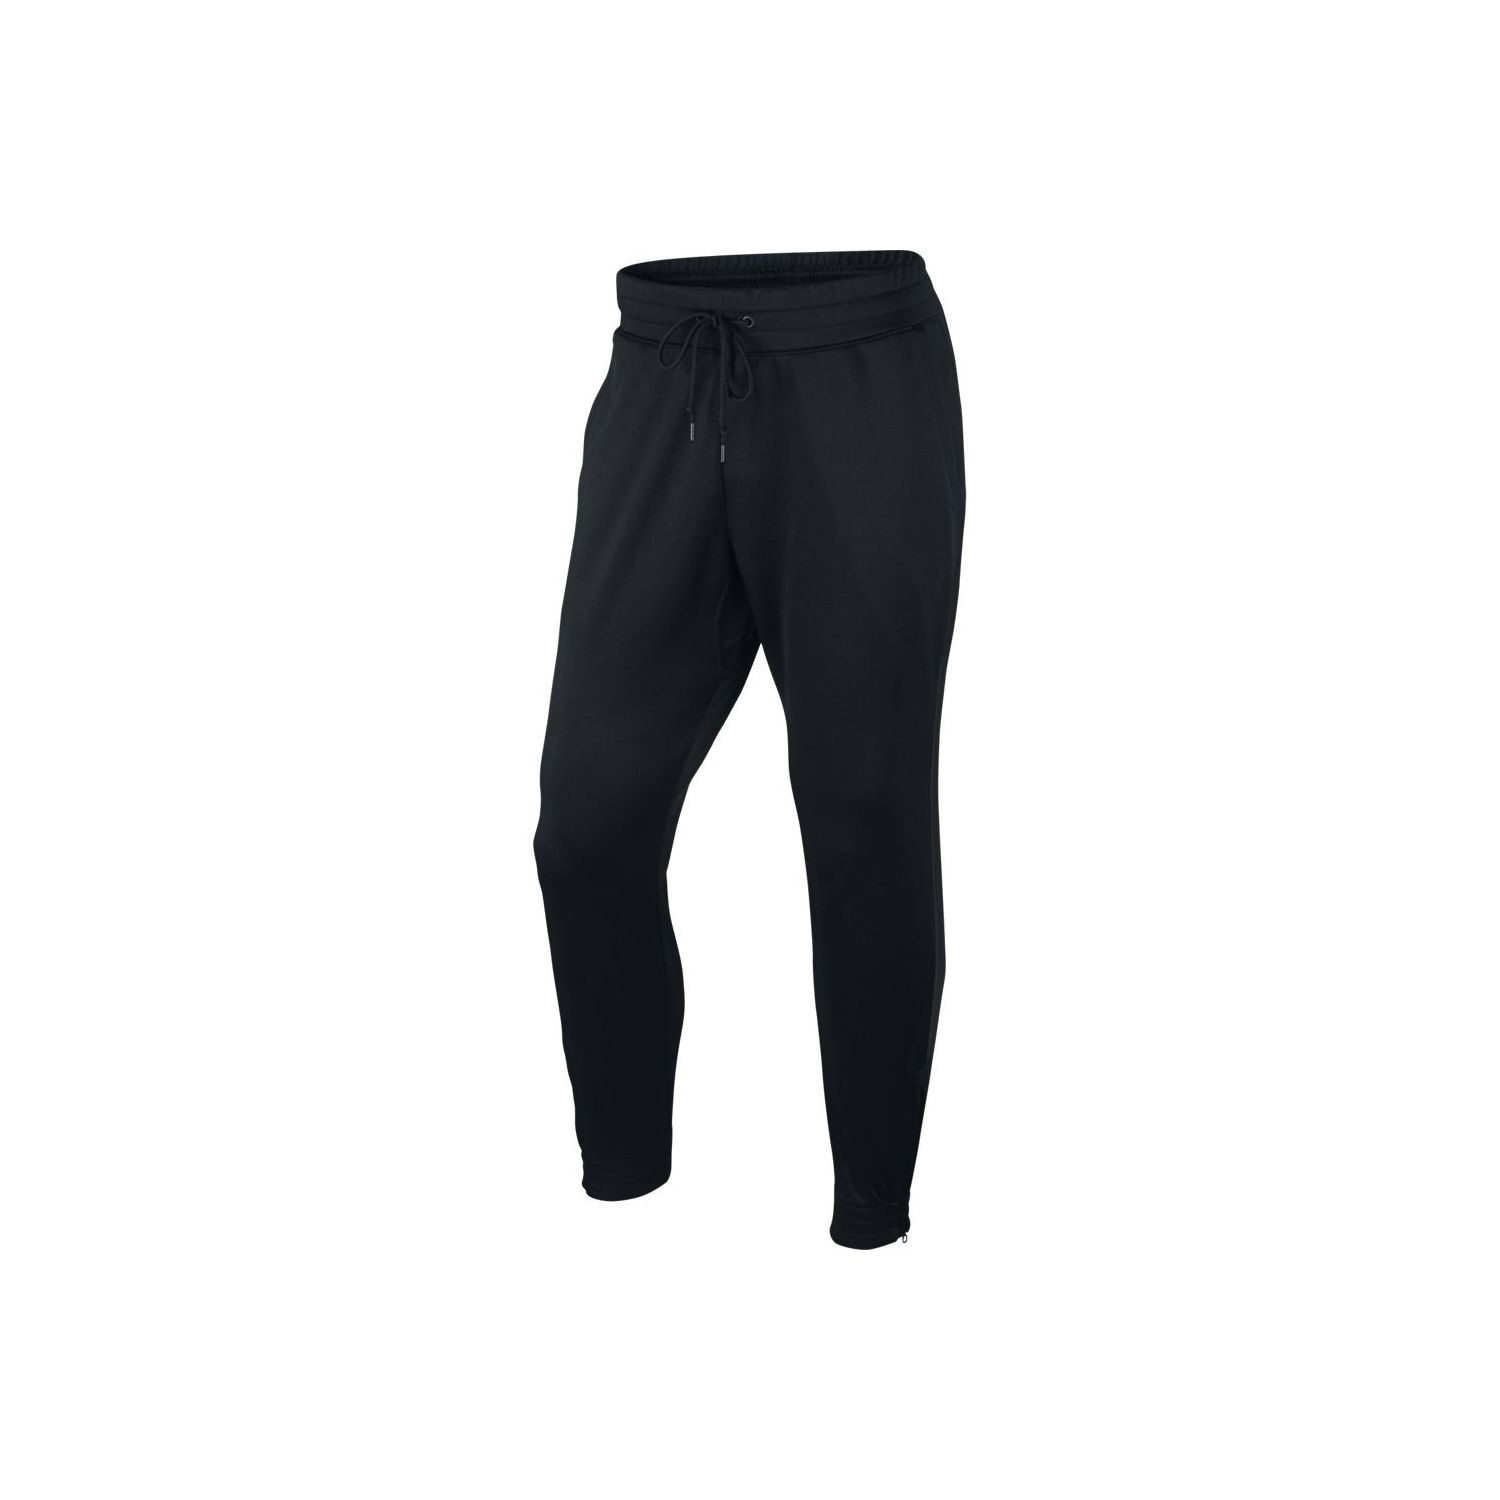 Noir Adidas Football Fc Pant Survetement Libero Nike Pantalon De IZHHq8